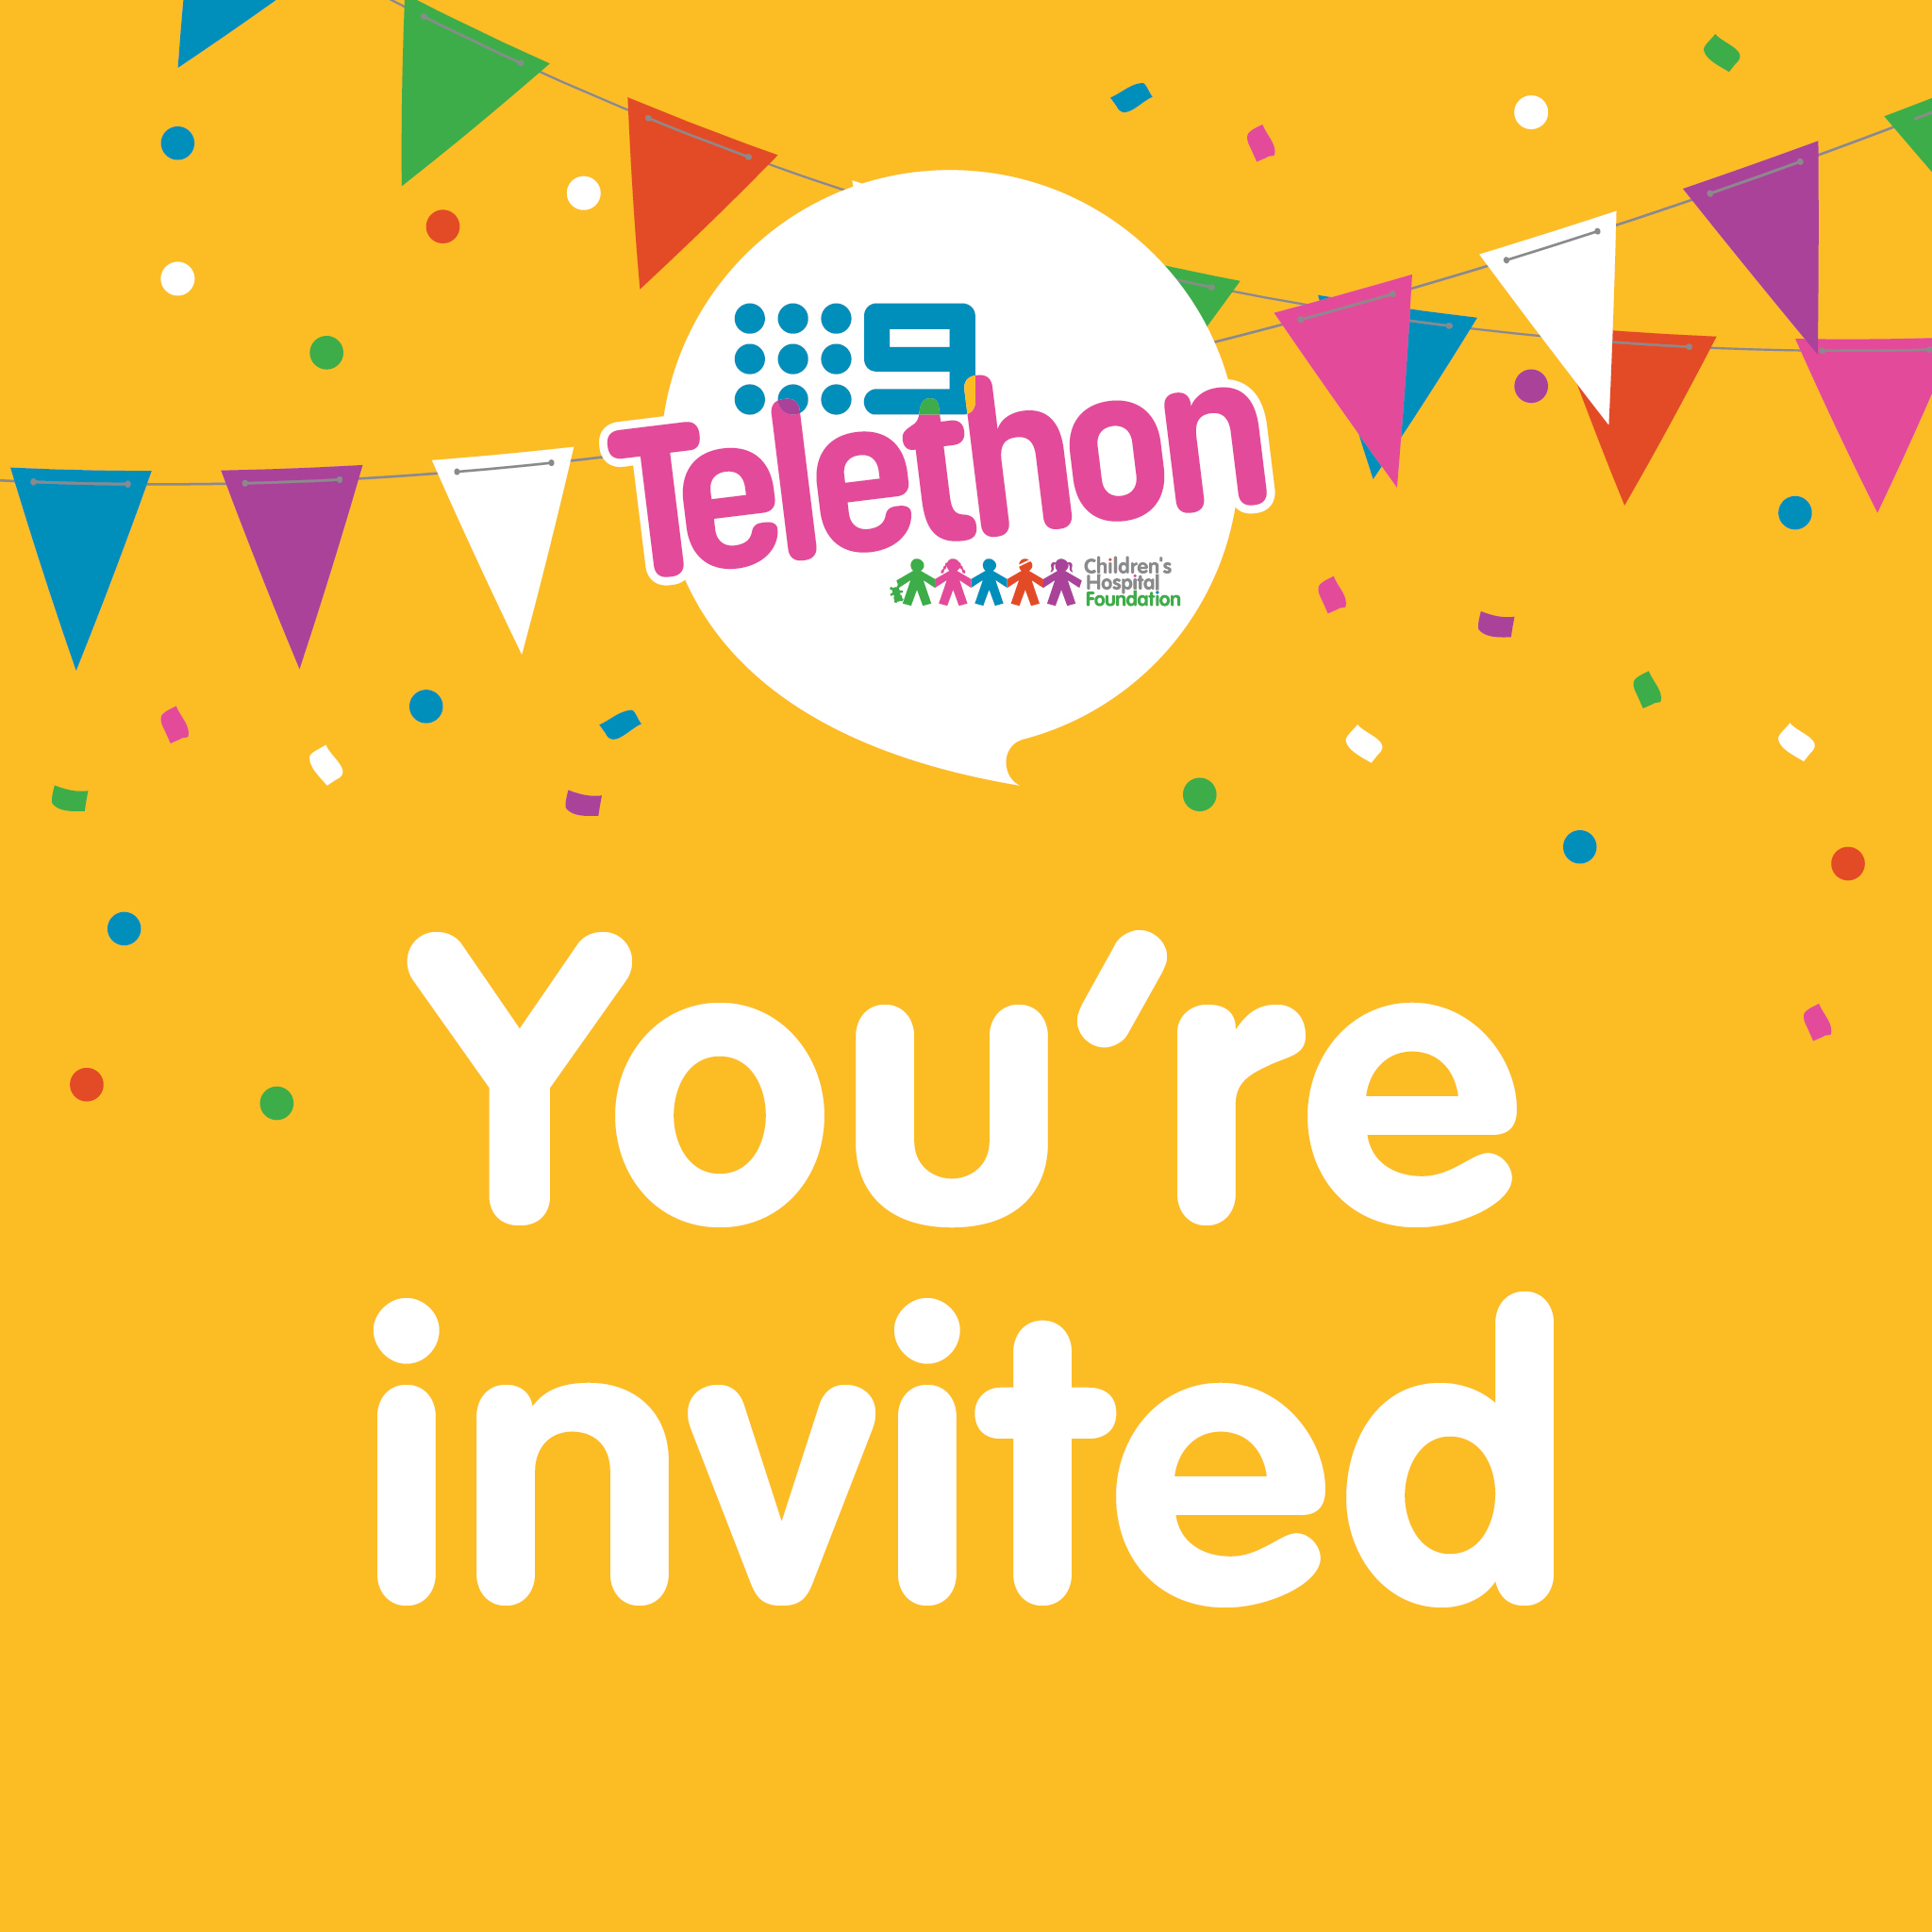 You're Invited - Telethon Party Social Tile